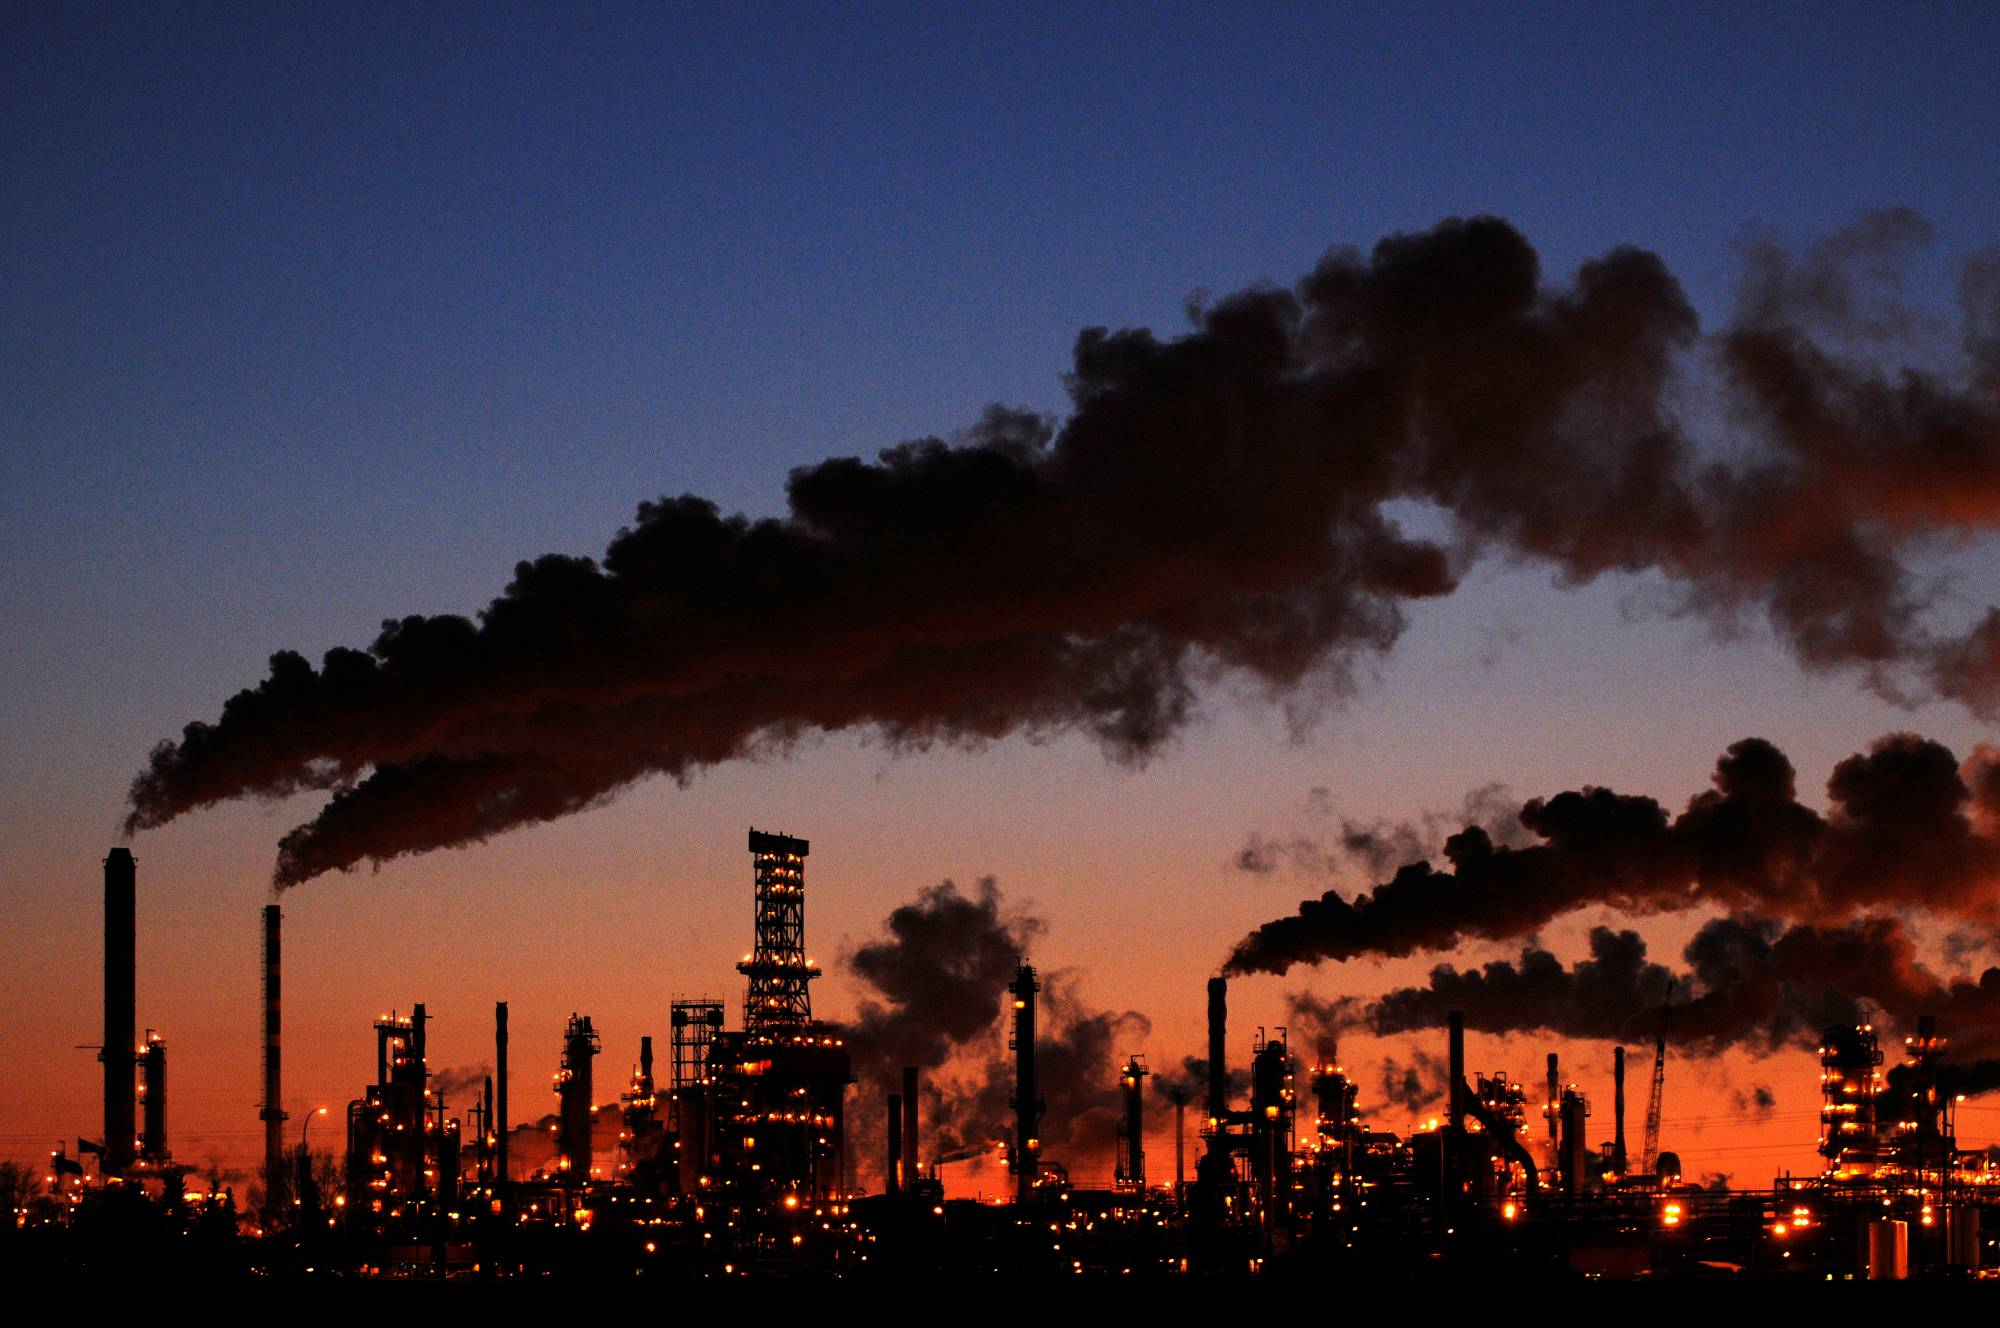 A refinery in Edmonton, Alberta. The 2015 Paris Agreement on climate change, signed by virtually all the world's nations, calls for capping global warming at